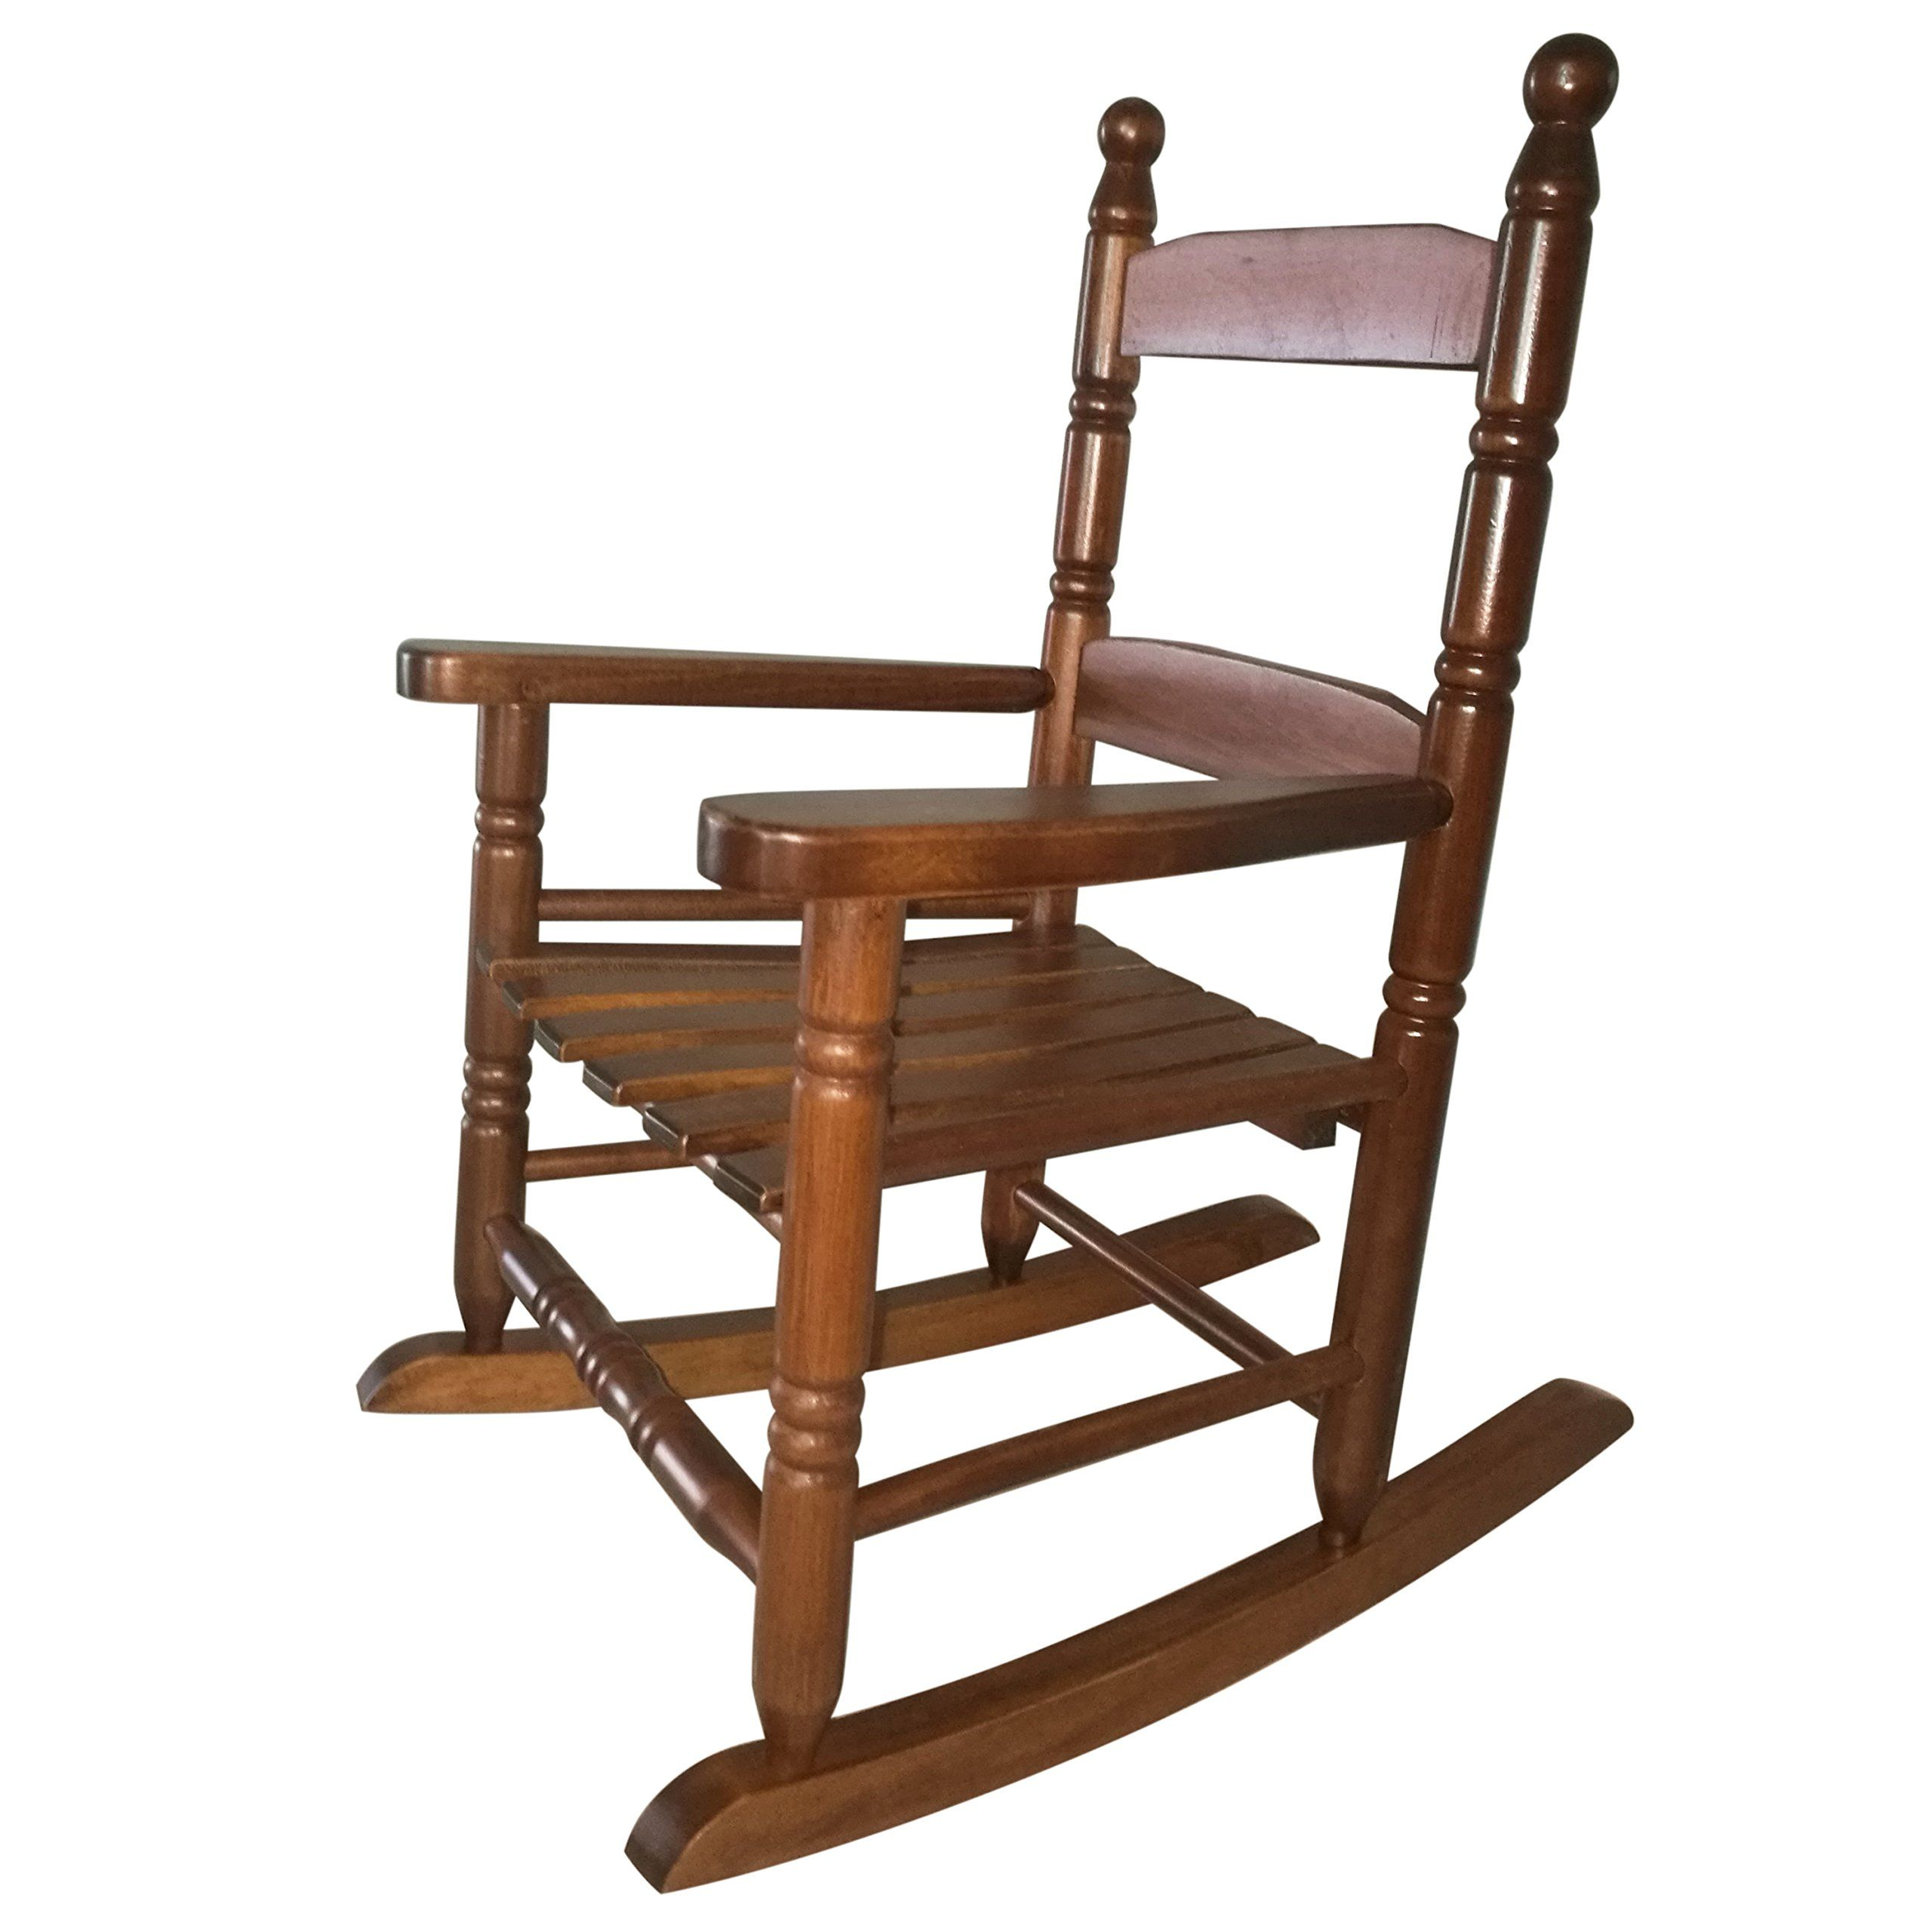 Rockingrocker K10nt Natural Wood Childa S Rocking Chair Porch Rocker Indoor Or Outdoor Suitable For 1 To 4 Years Old Read More At The Rocking Chair Porch